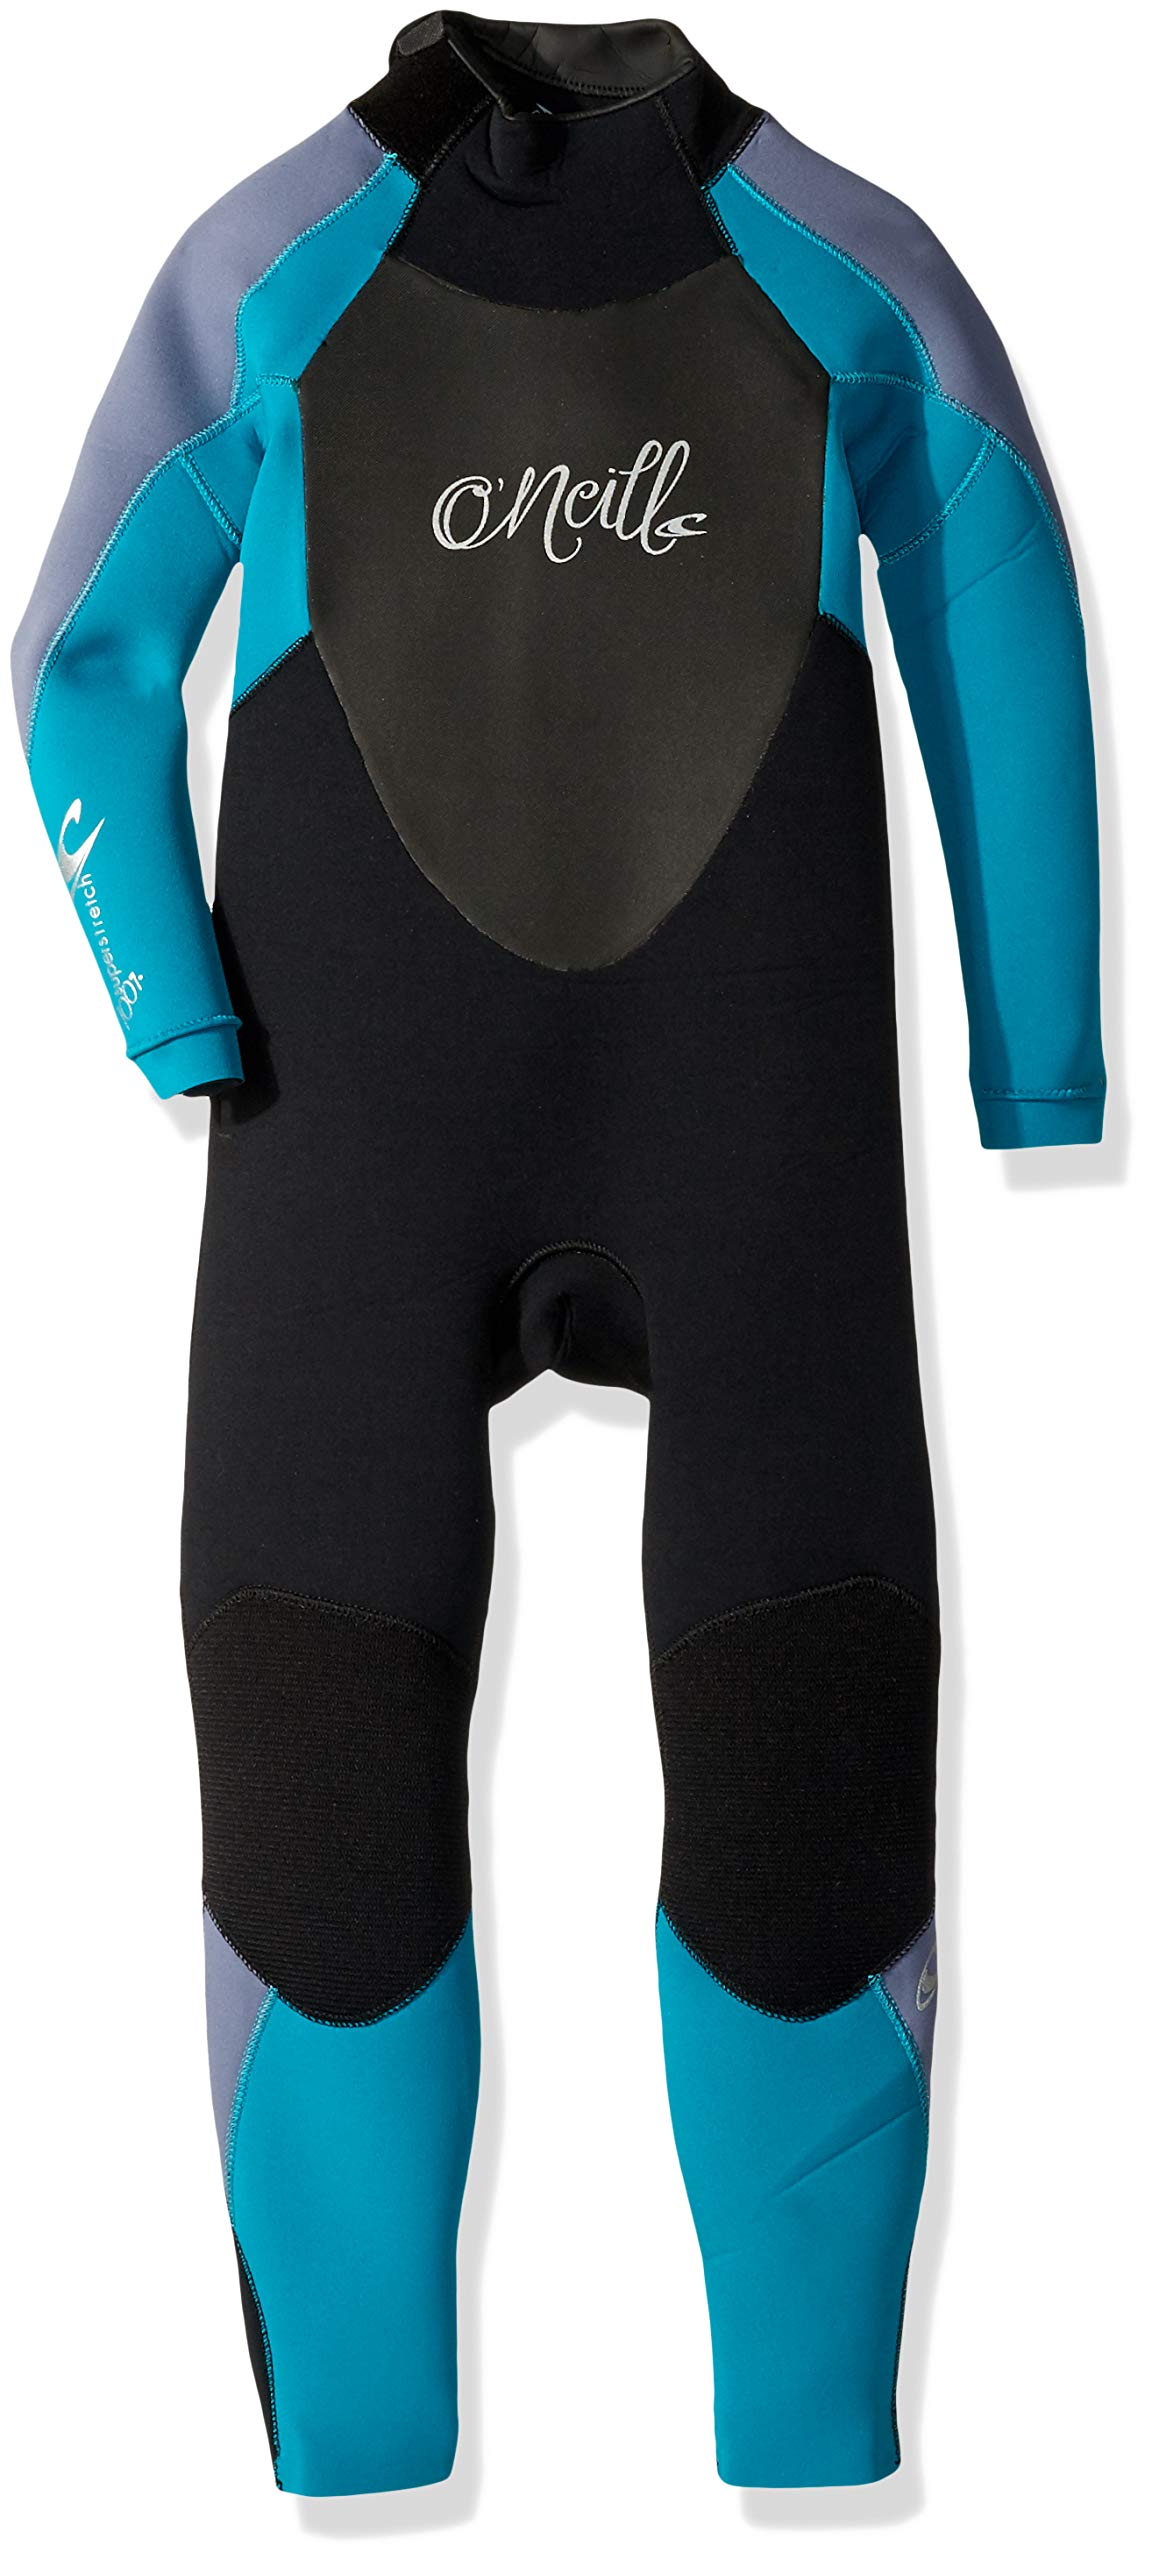 O'Neill Youth Epic 3/2mm Back Zip Full Wetsuit, Black/Capribrz/Mist, 4